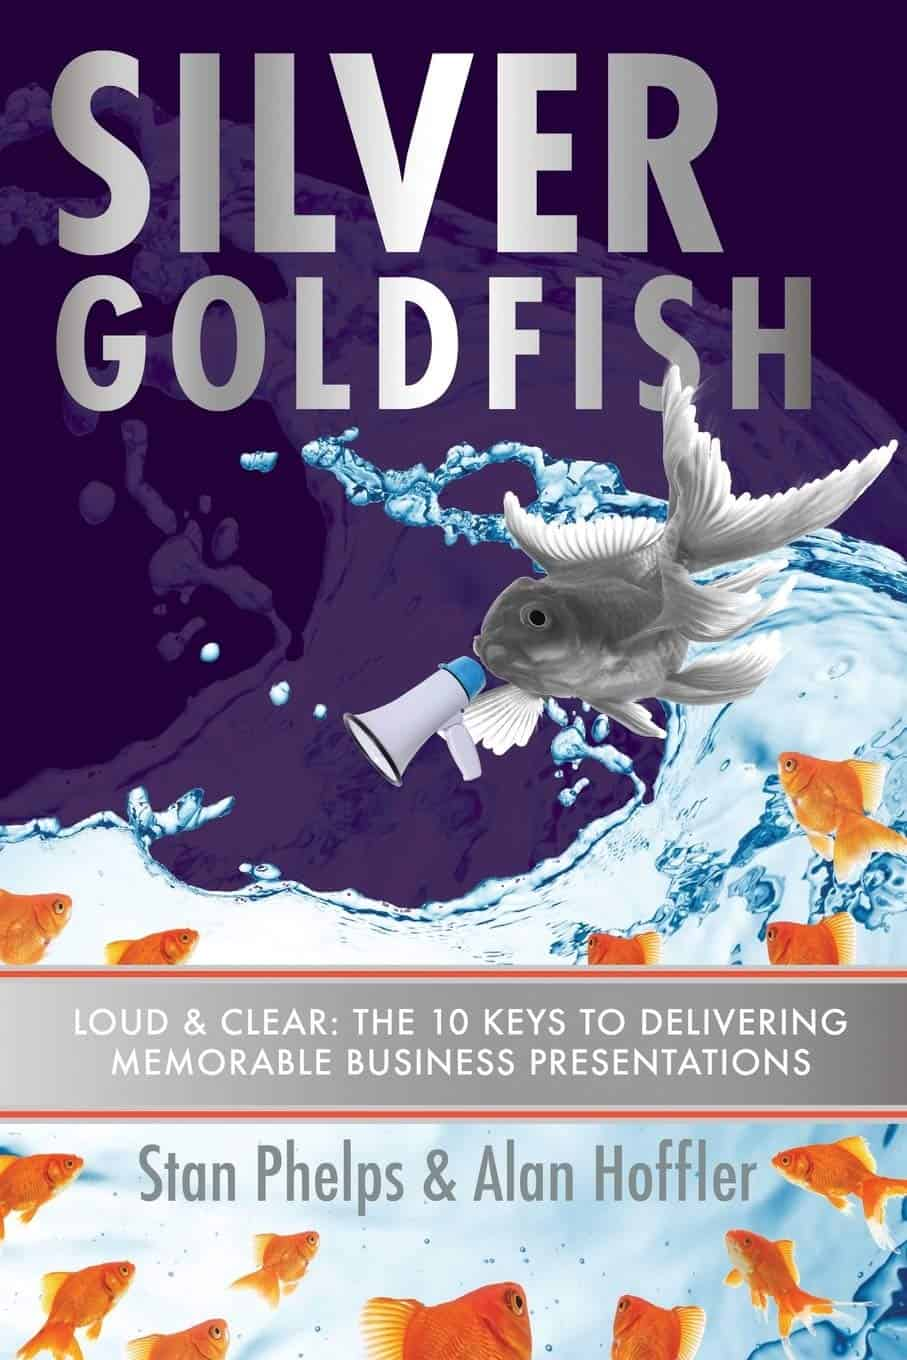 Cover of the book Silver Goldfish